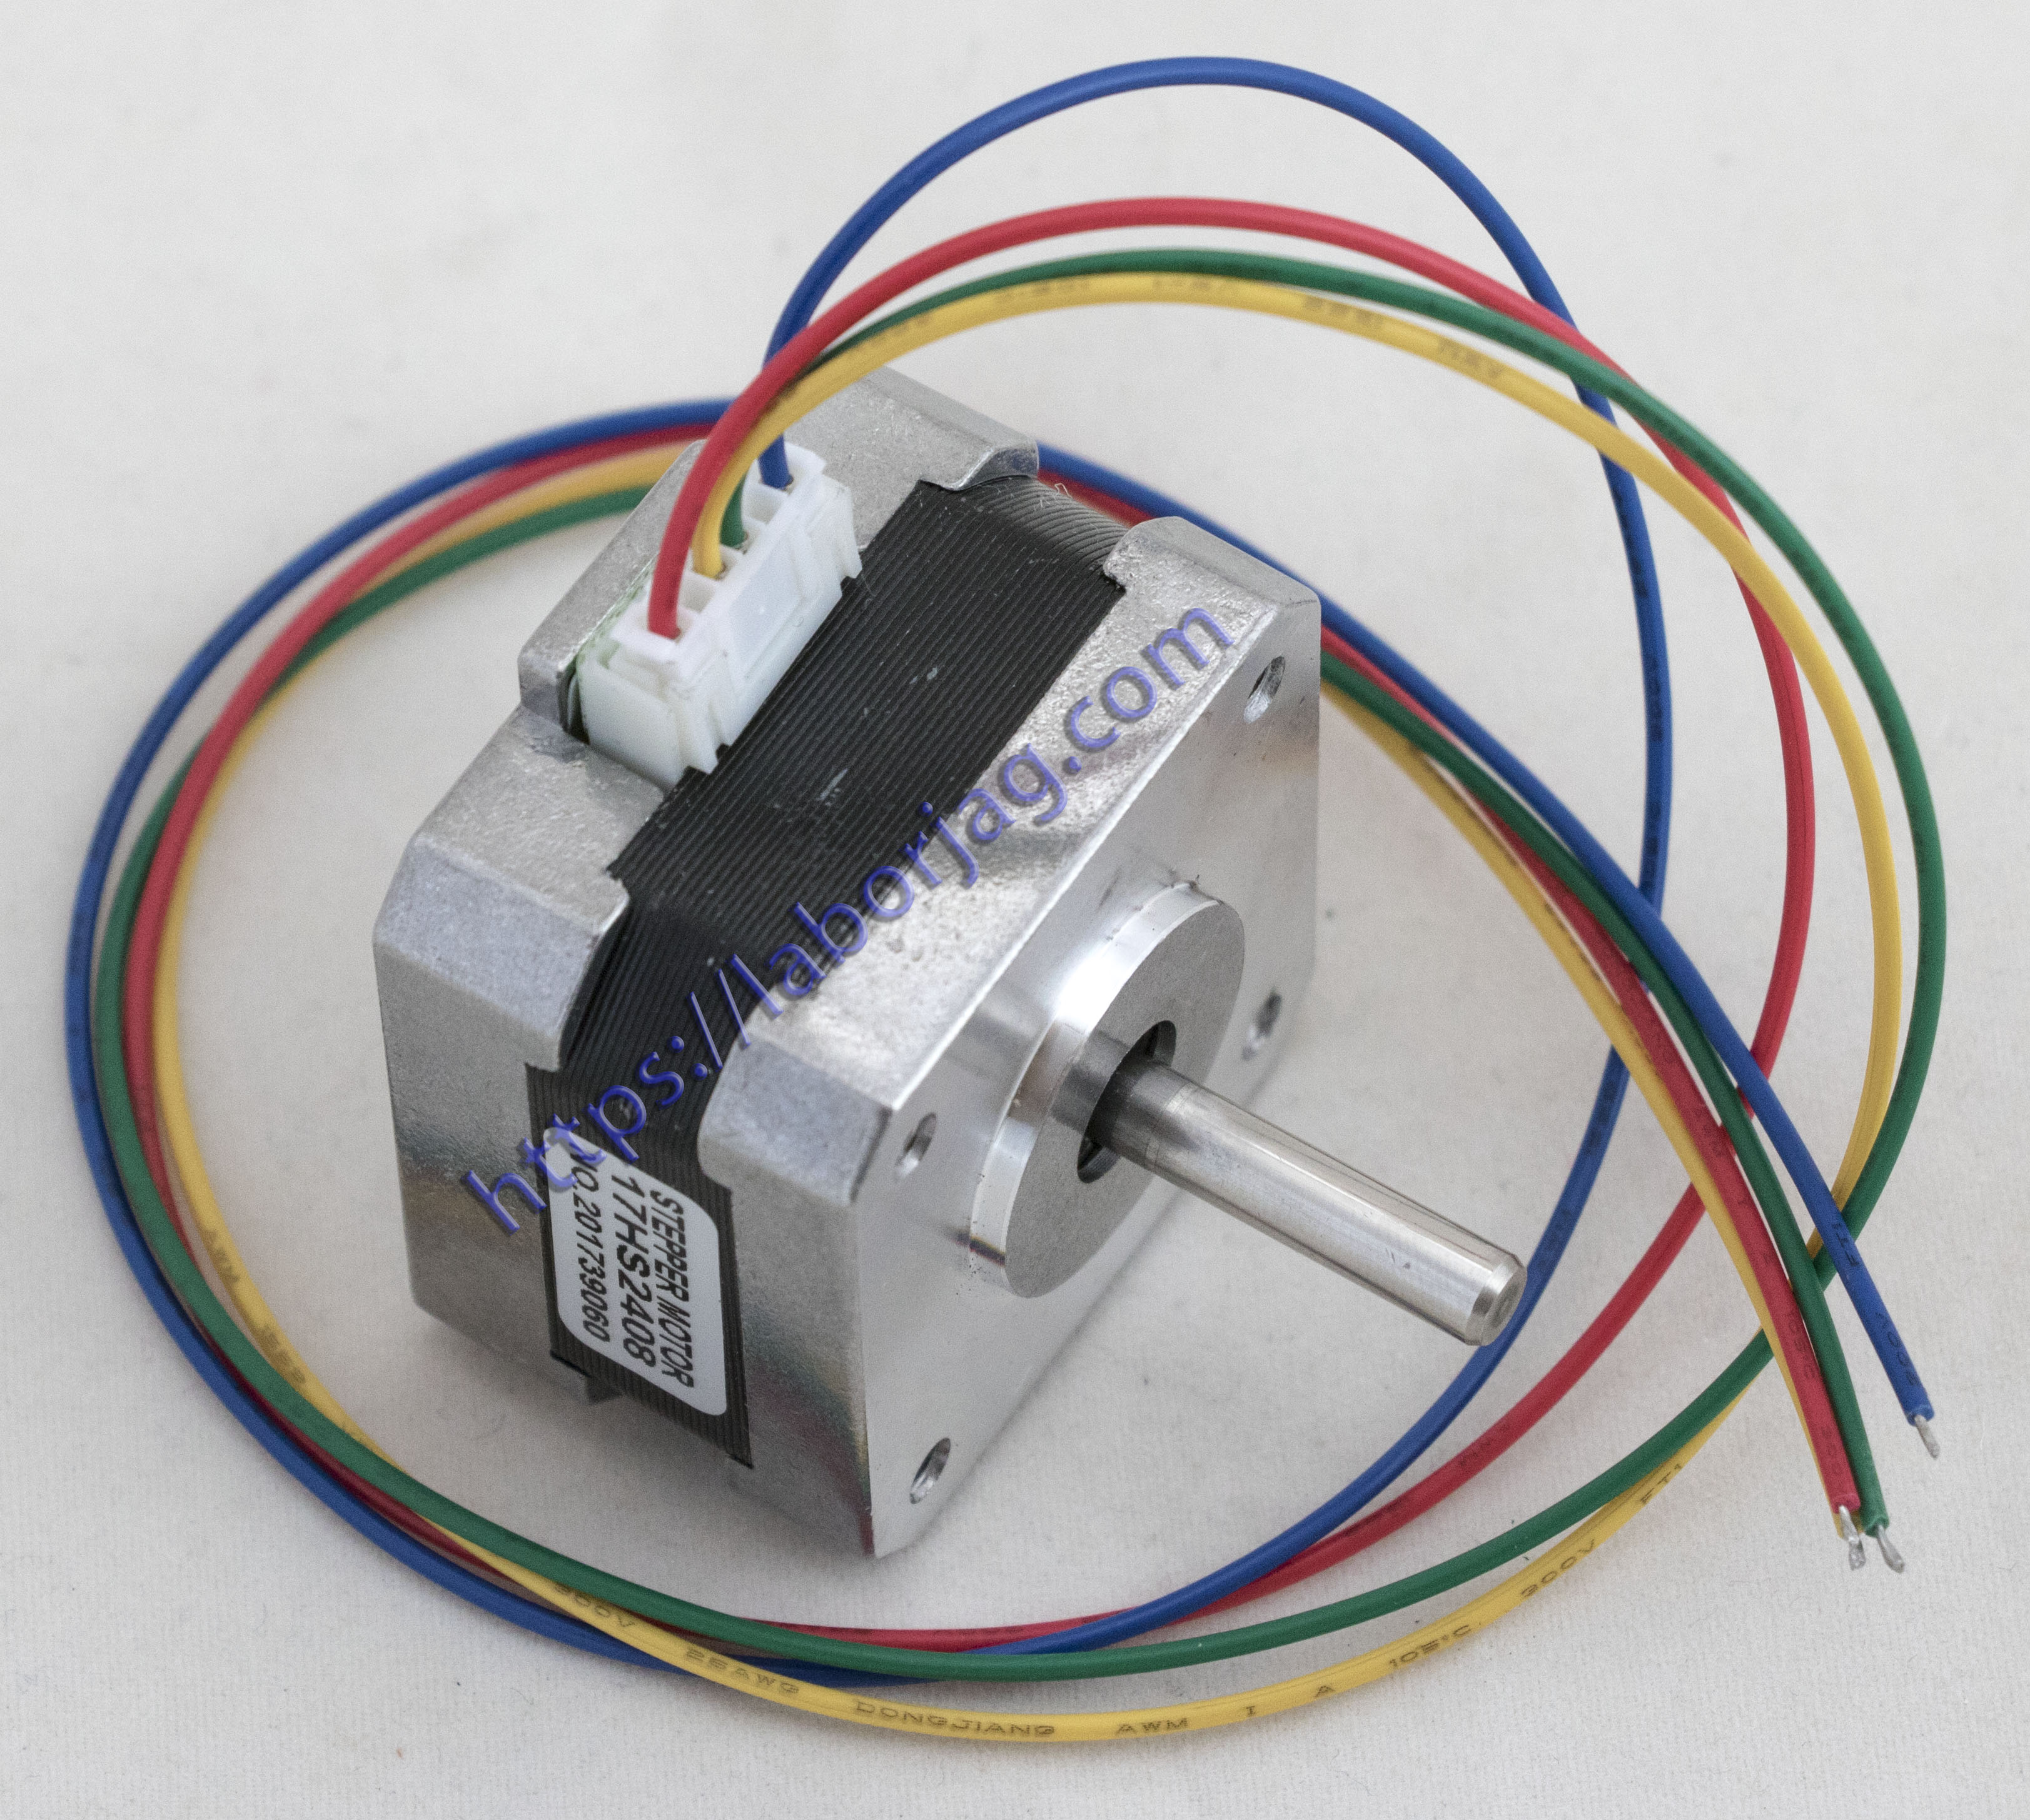 Nema 17 Stepper Motor 17hs2408 Borja Home Page 7 Lead Wiring 4 42 42bygh 06a Ce Rosh Iso Cnc Laser And 3d Printer